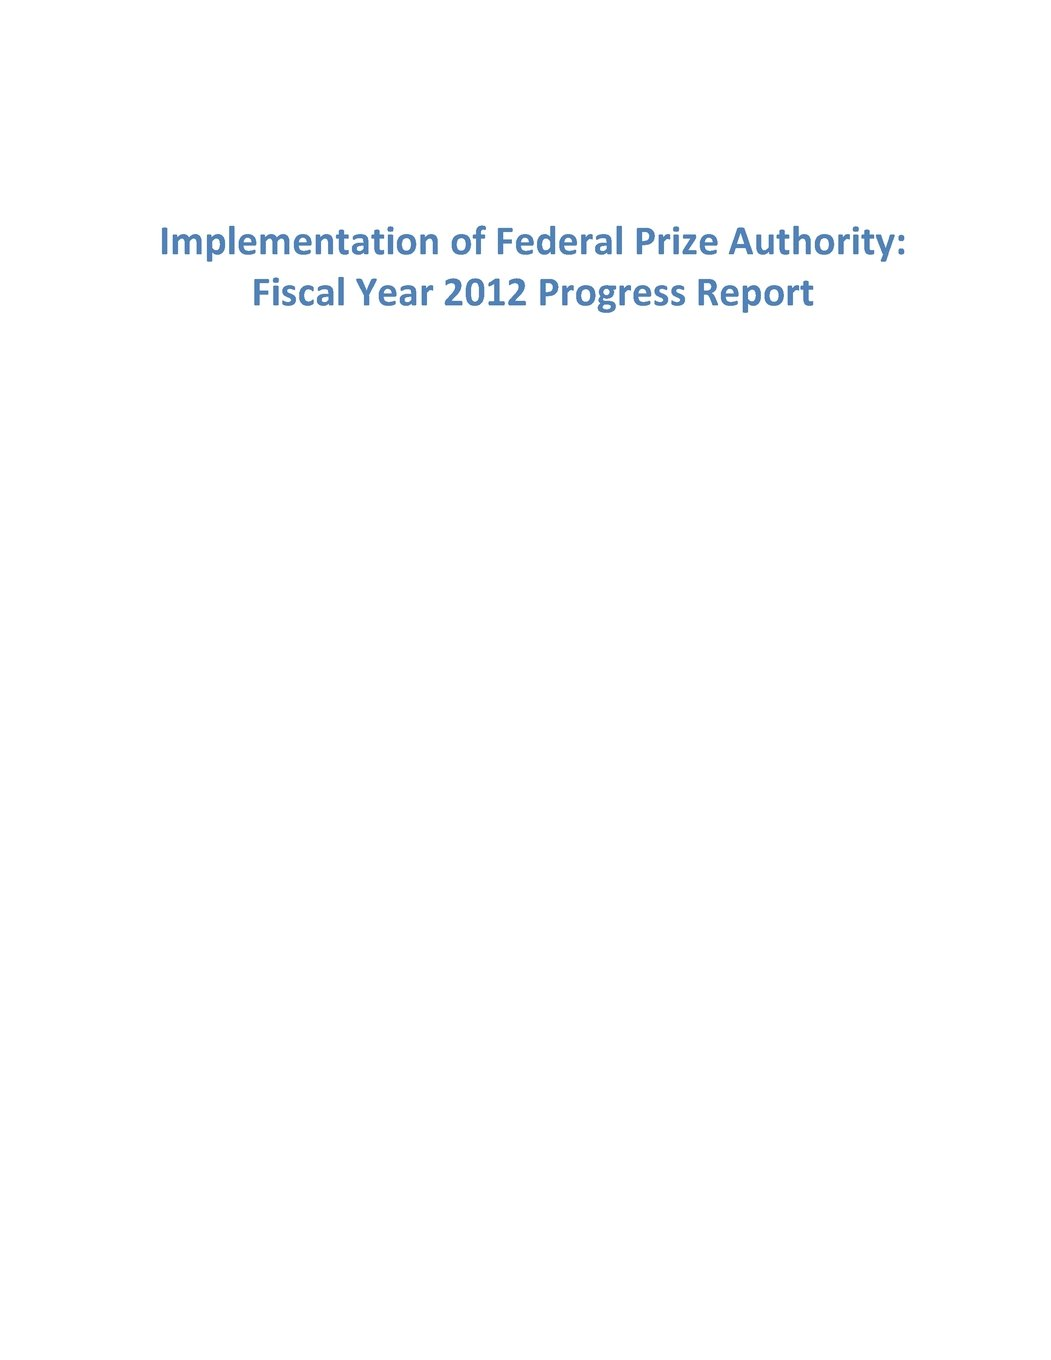 Implementation of Federal Prize Authority: Fiscal Year 2012 Progress Report pdf